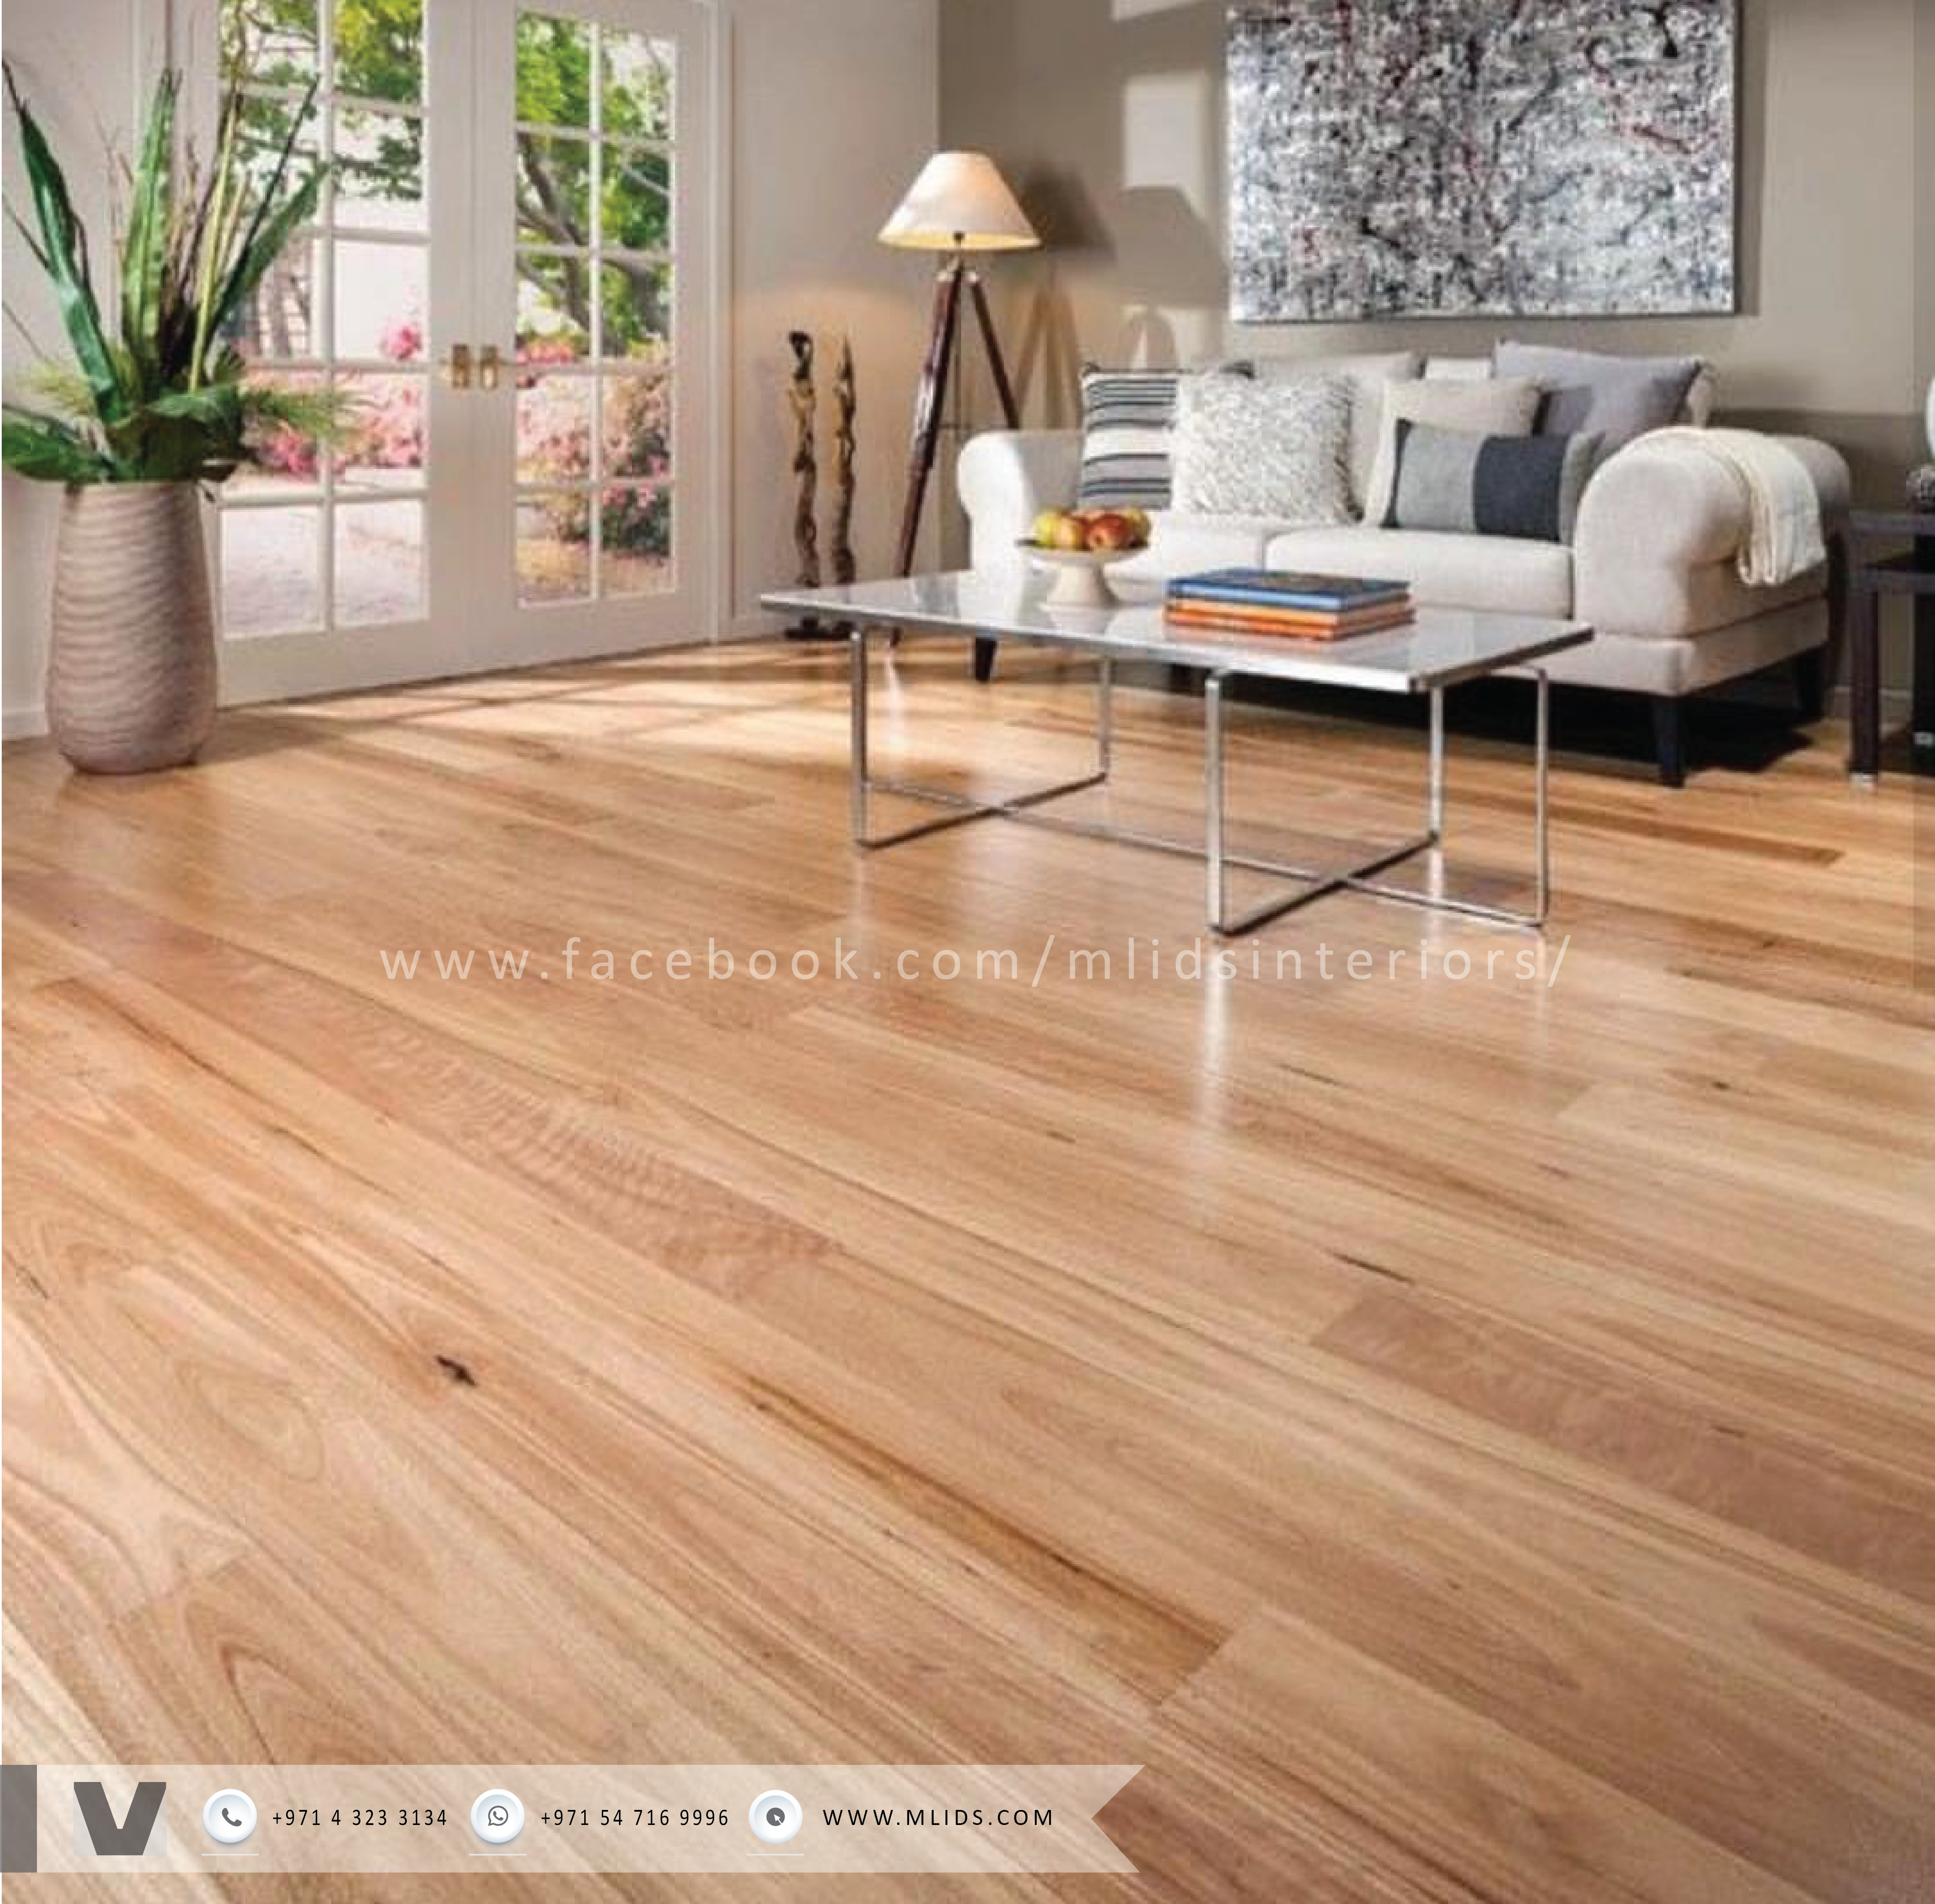 The Flooring Should Always Be Suitable For Significant Wear And Tear And It Must Satisfy The Cust Engineered Timber Flooring House Flooring Engineered Flooring